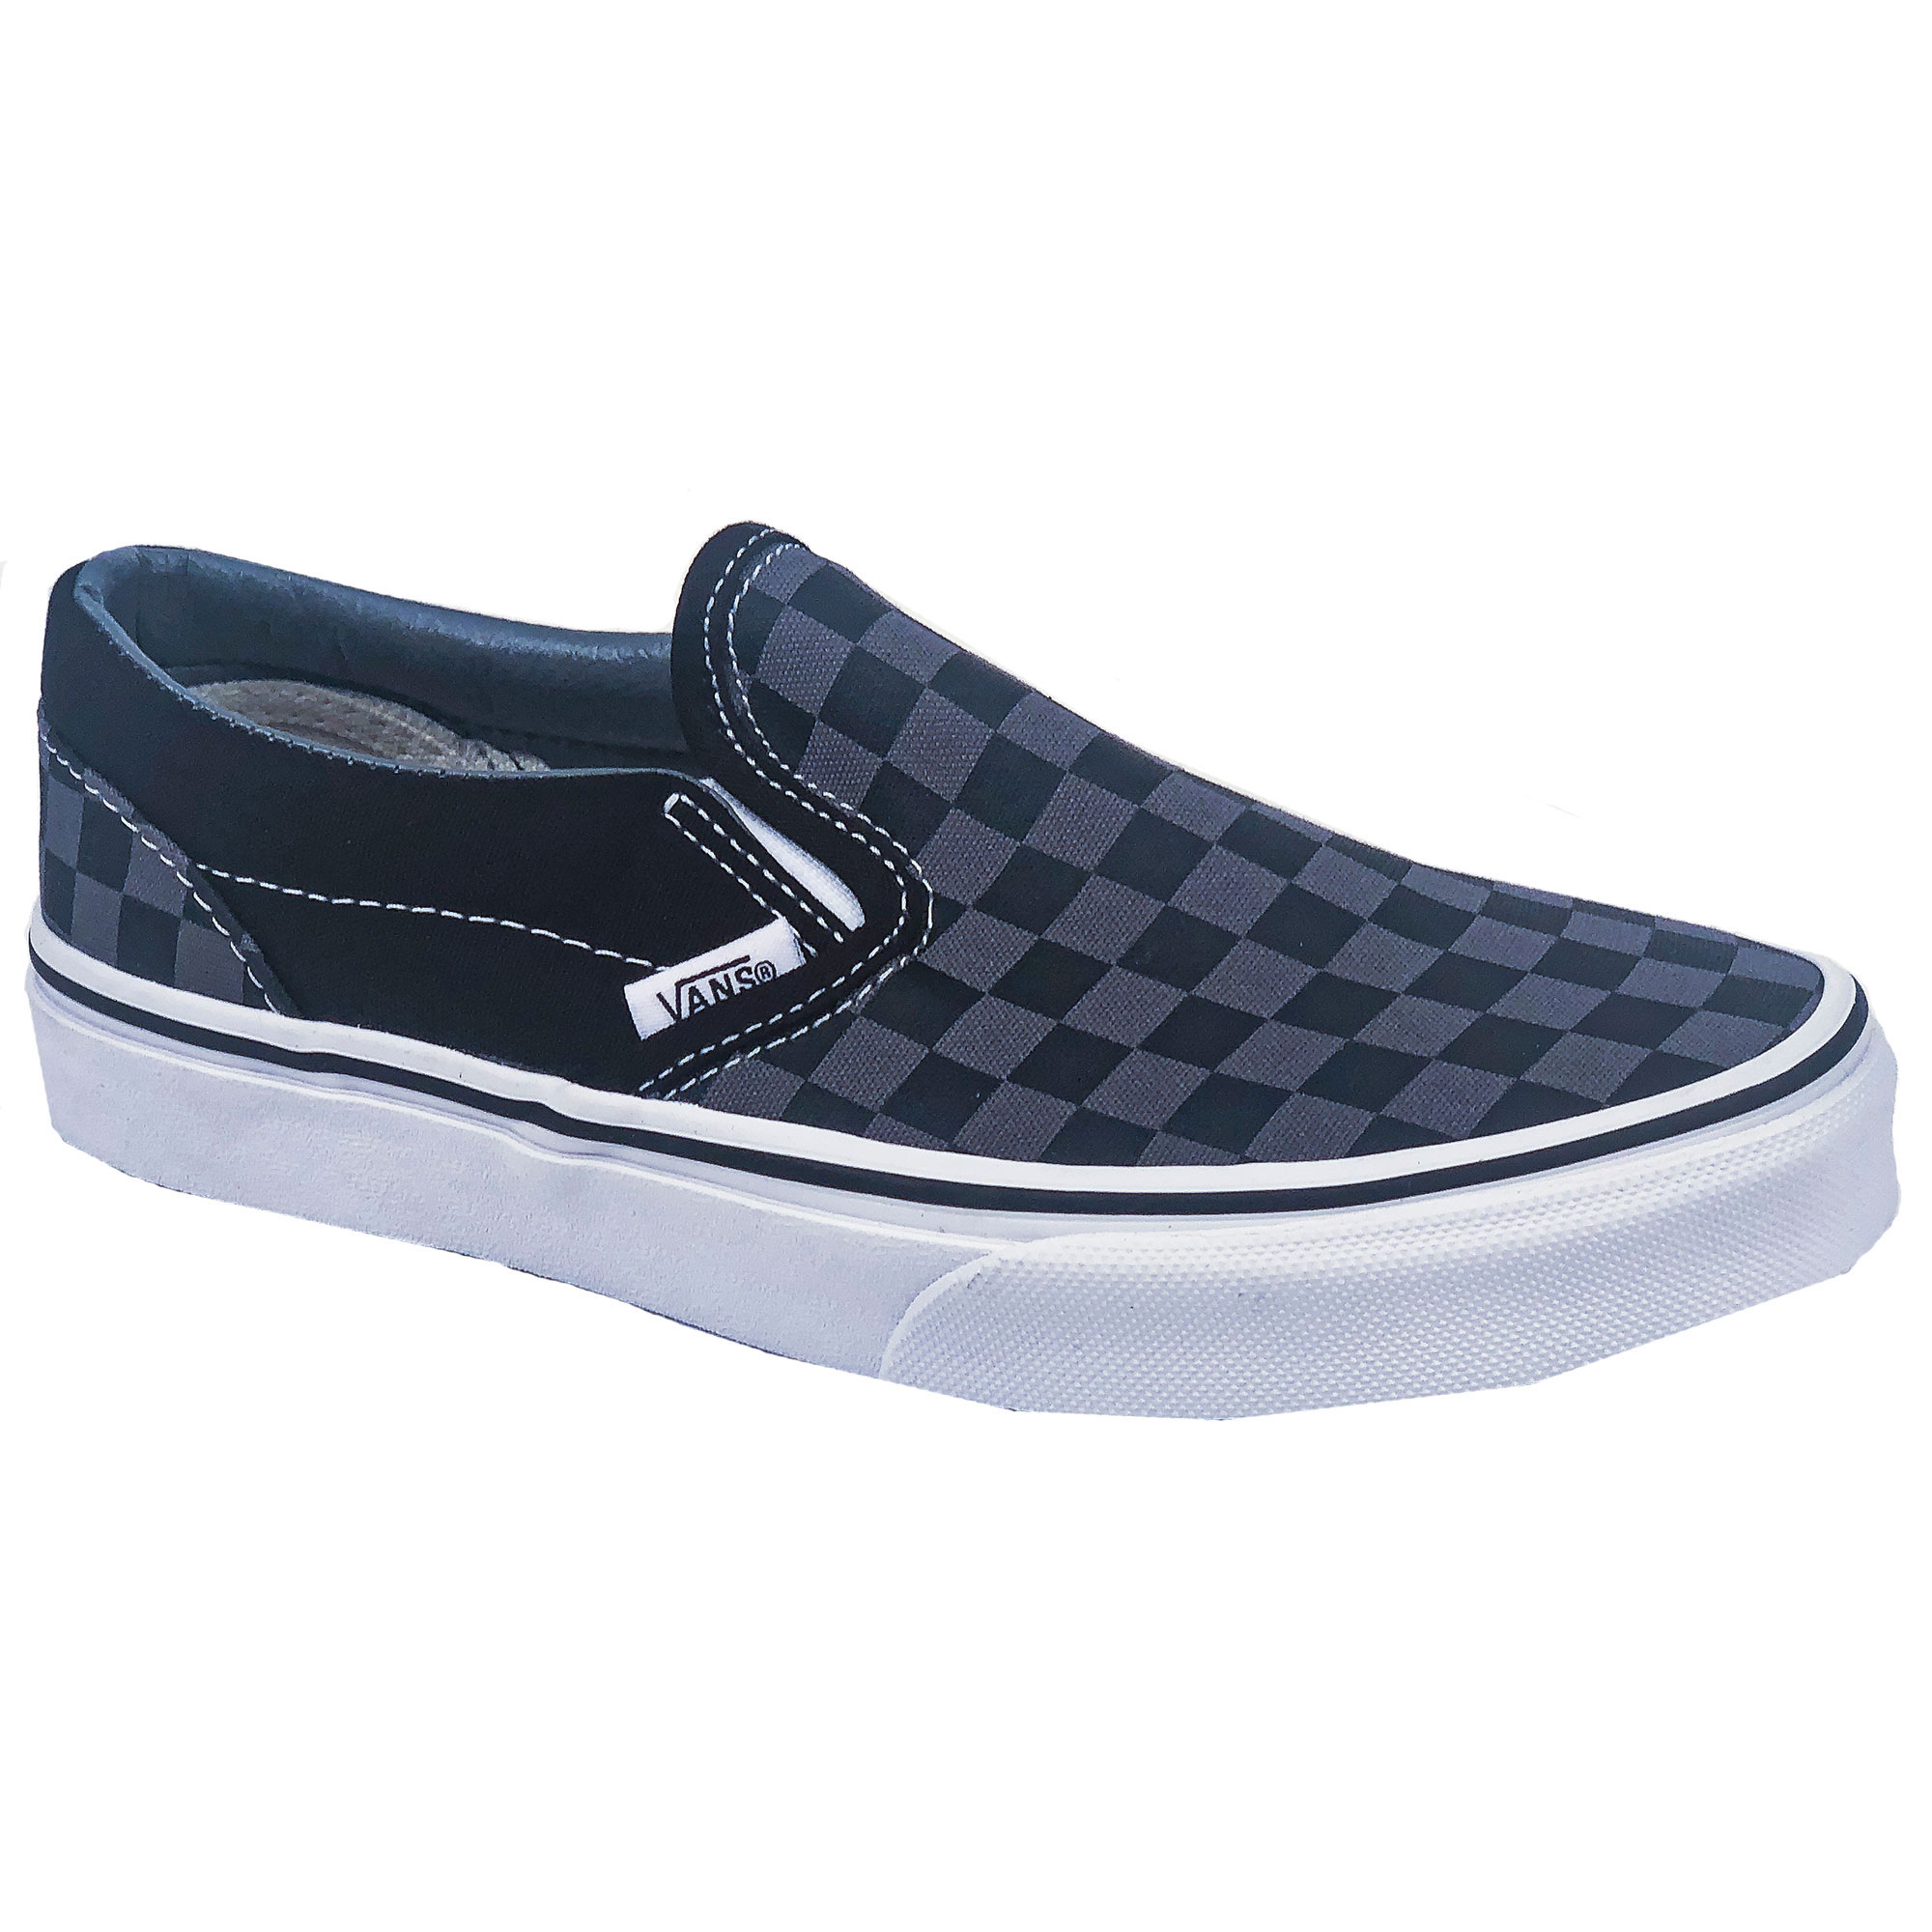 3454f03863 Vans Kids Classic Slip On Black Pewter Casual Shoes - Sun   Ski Sports